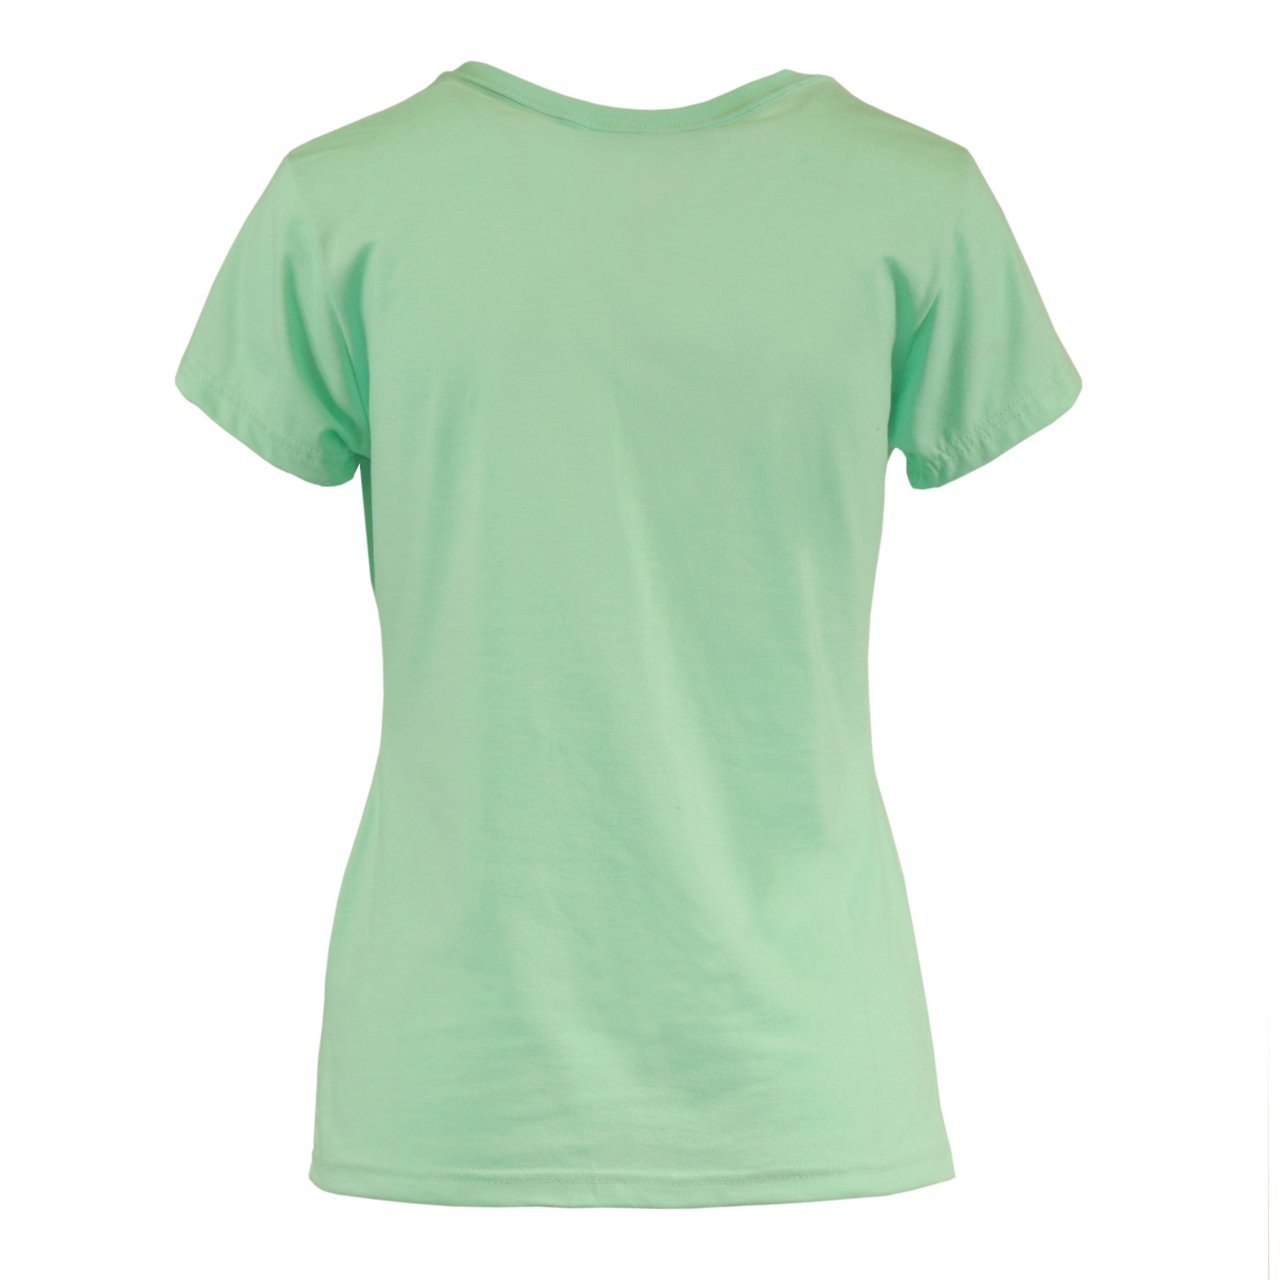 PC150MT Eco REPREVE® Recycled Polyester/Cotton Ladies T-Shirt - Mint